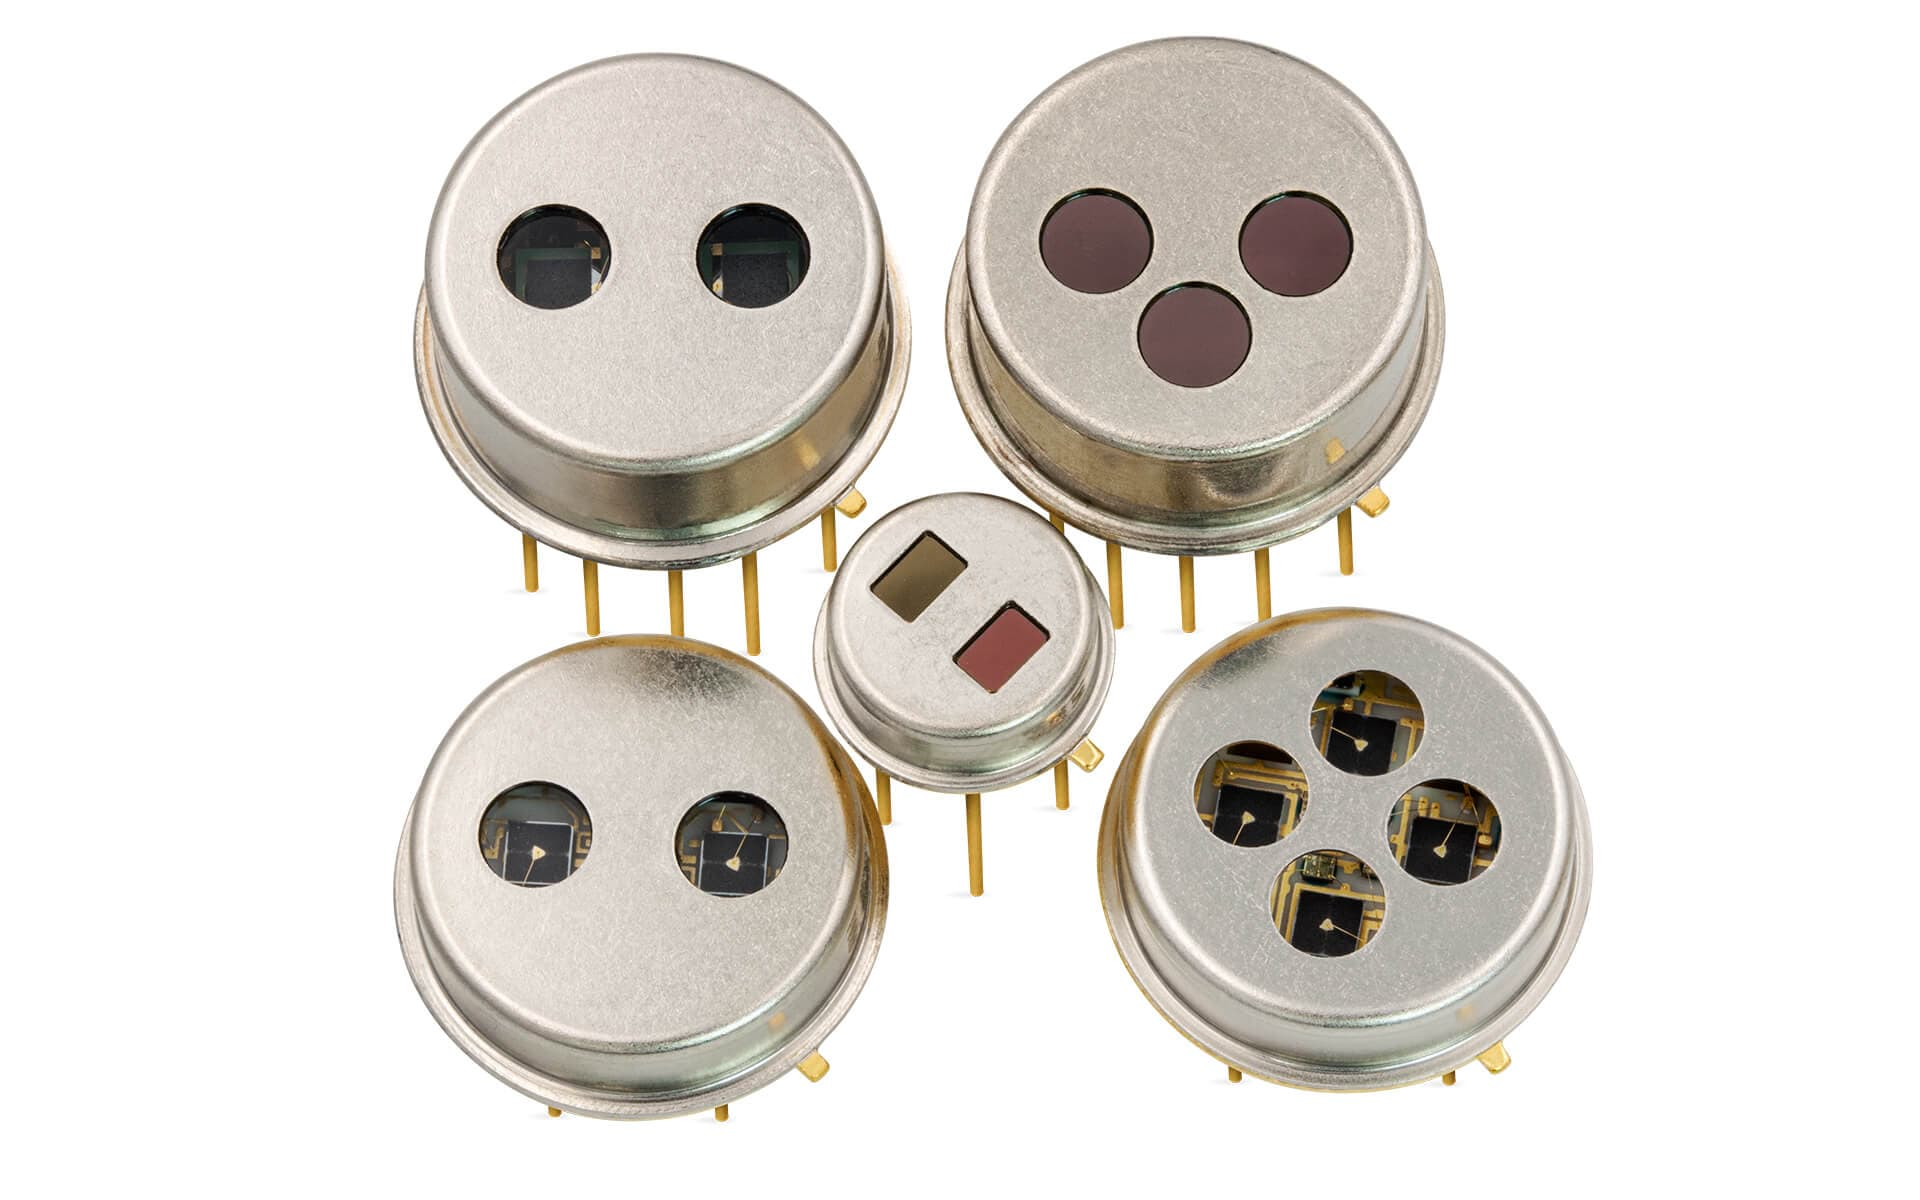 Planar multi channel pyroelectric detectors from InfraTec